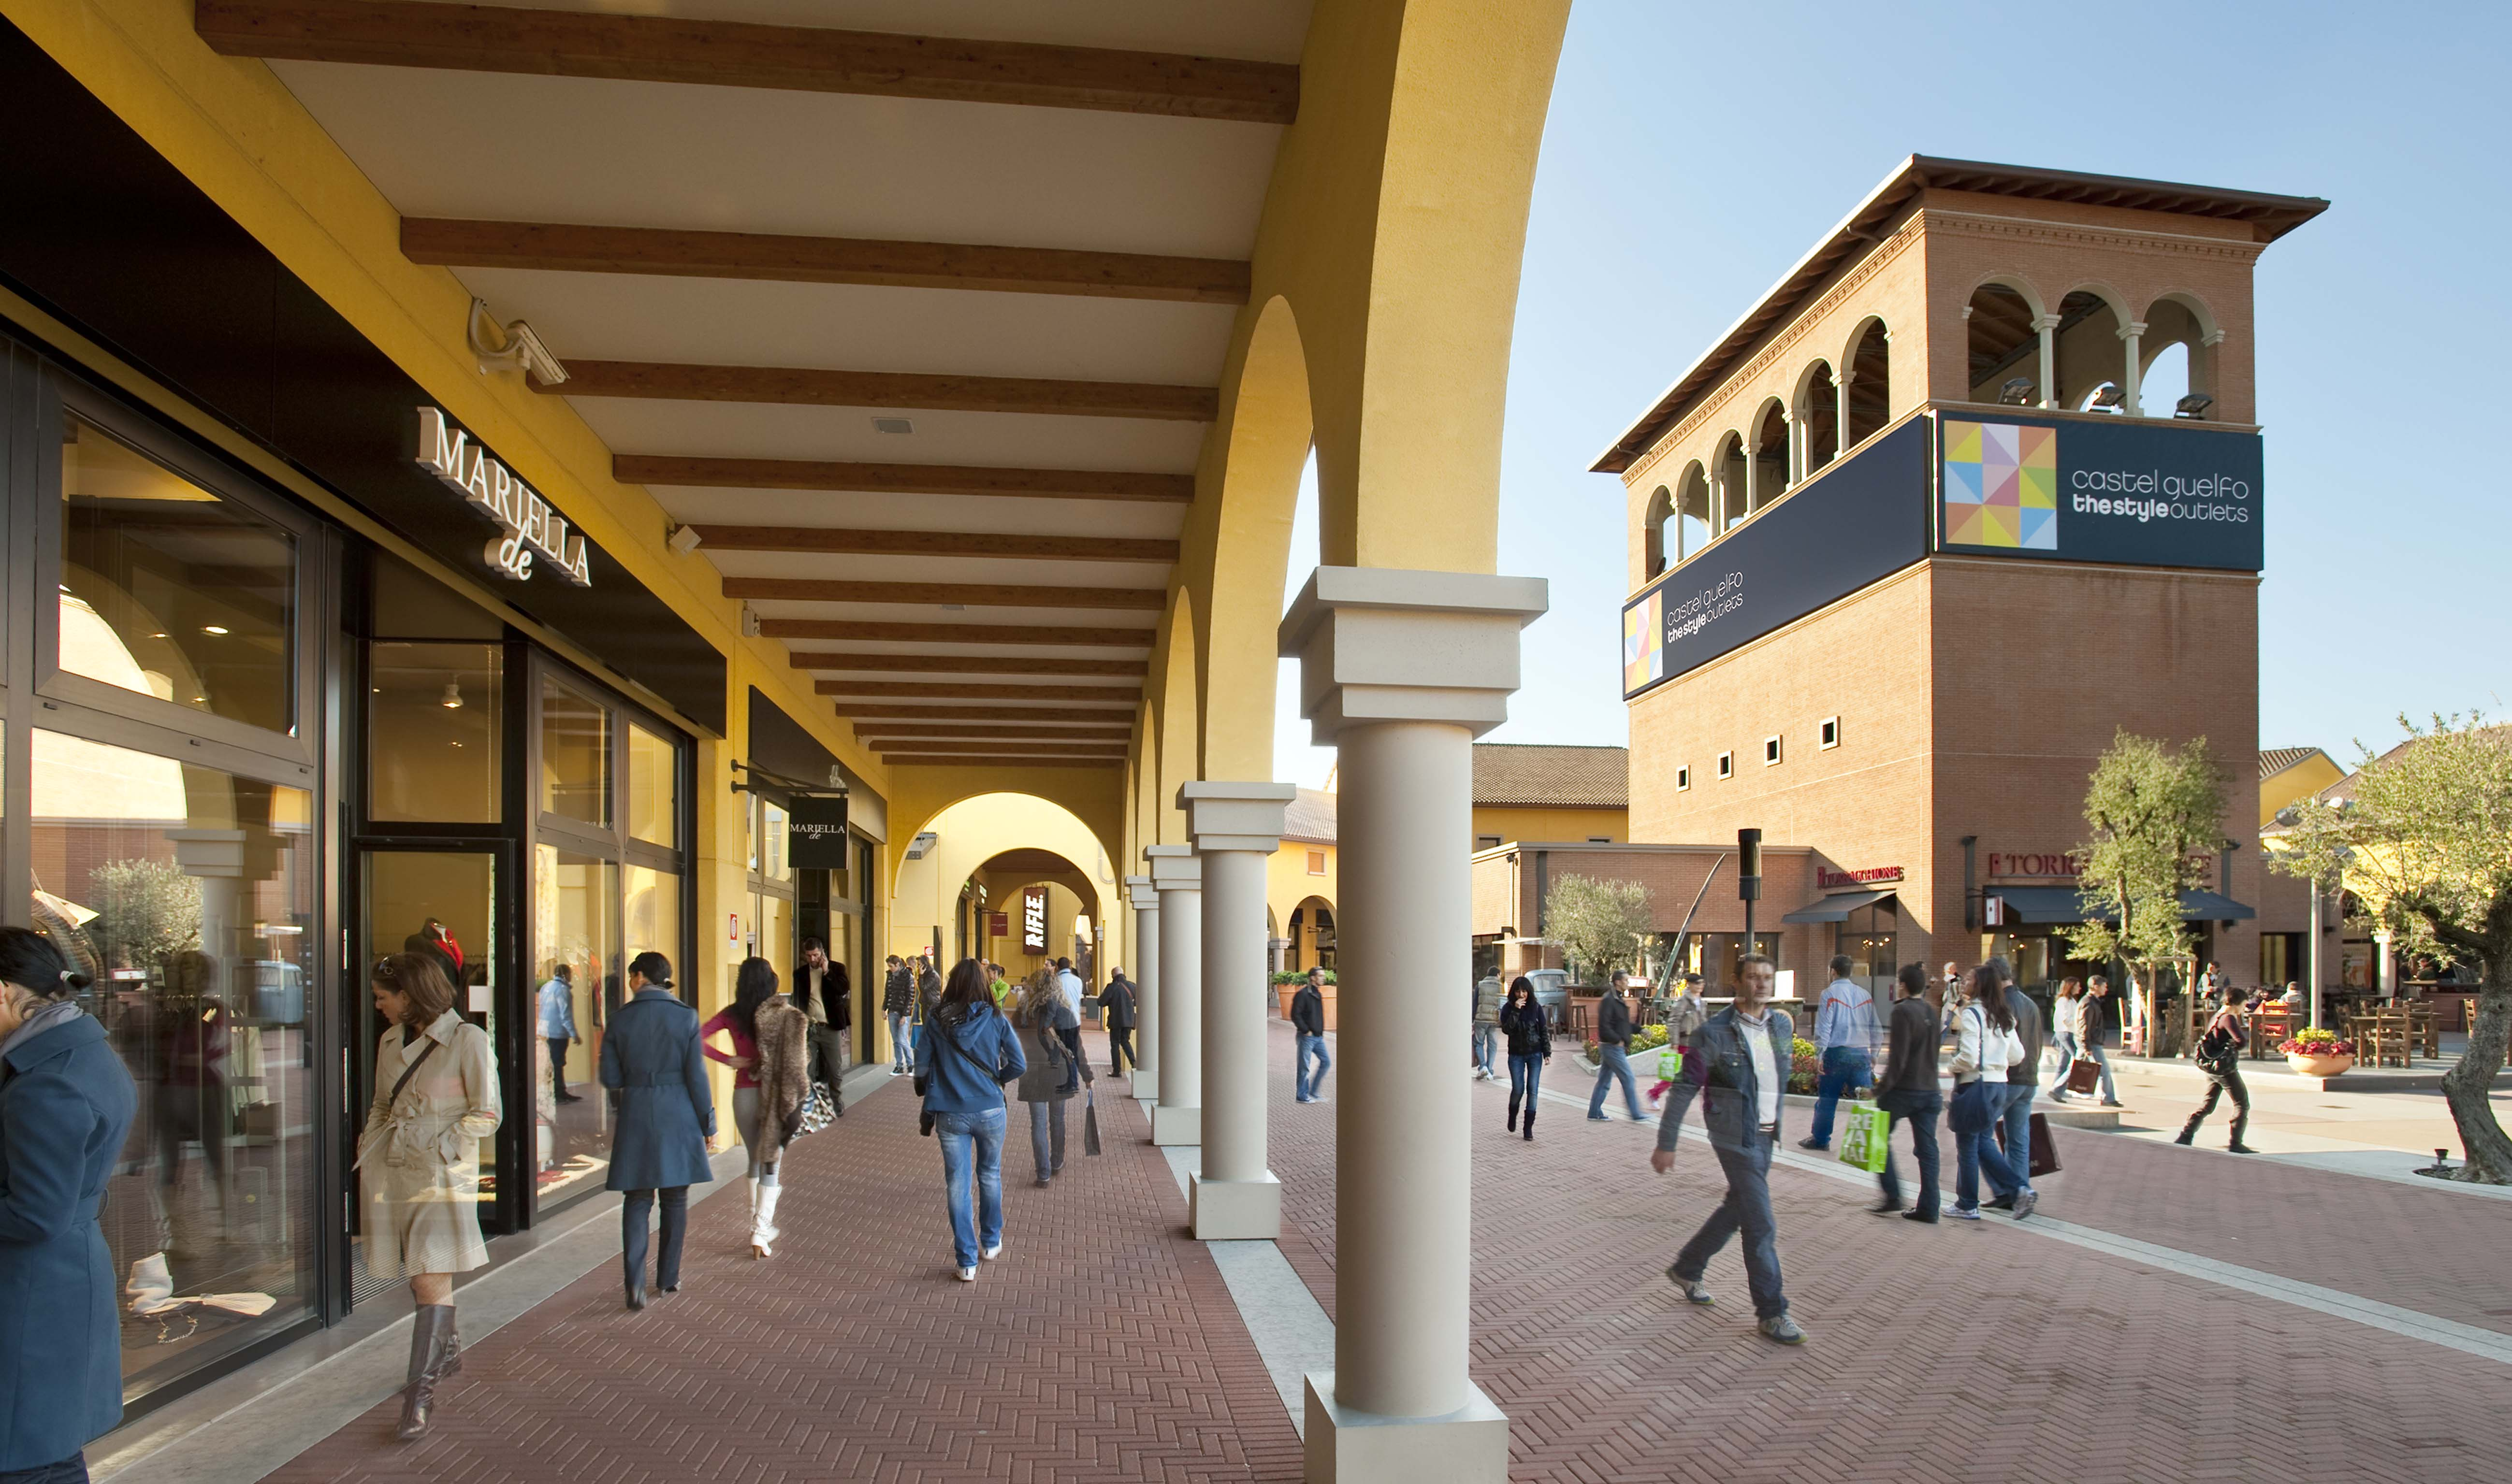 Castel Guelfo The Style Outlets | NEINVER